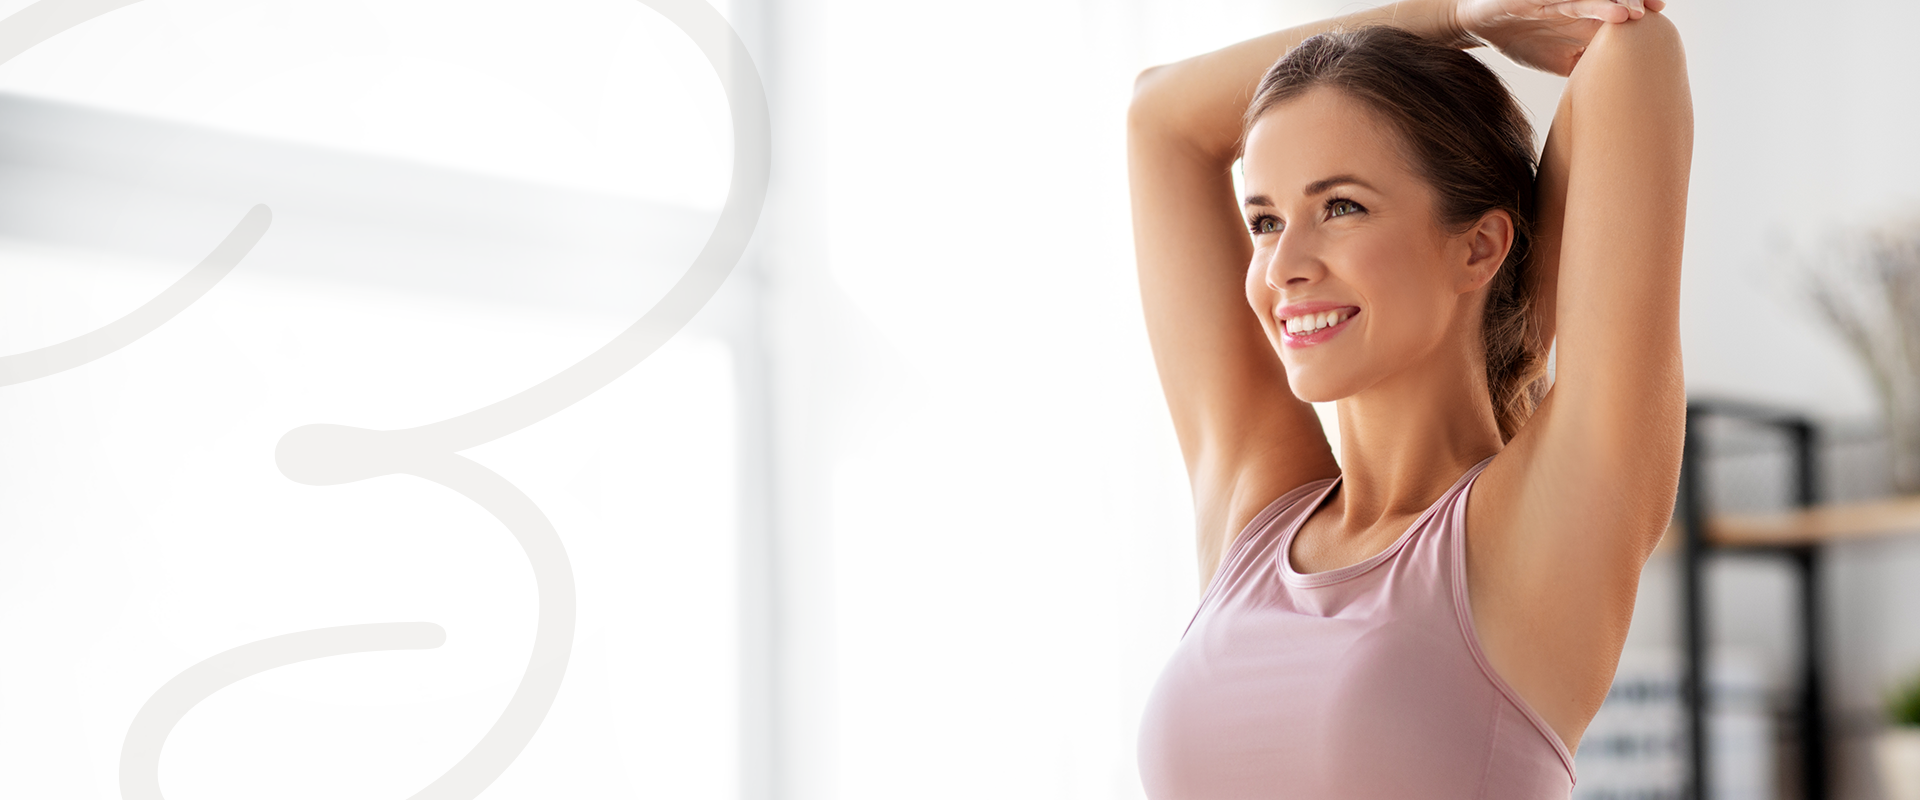 Beautiful, smiling woman with smooth skin after laser hair removal